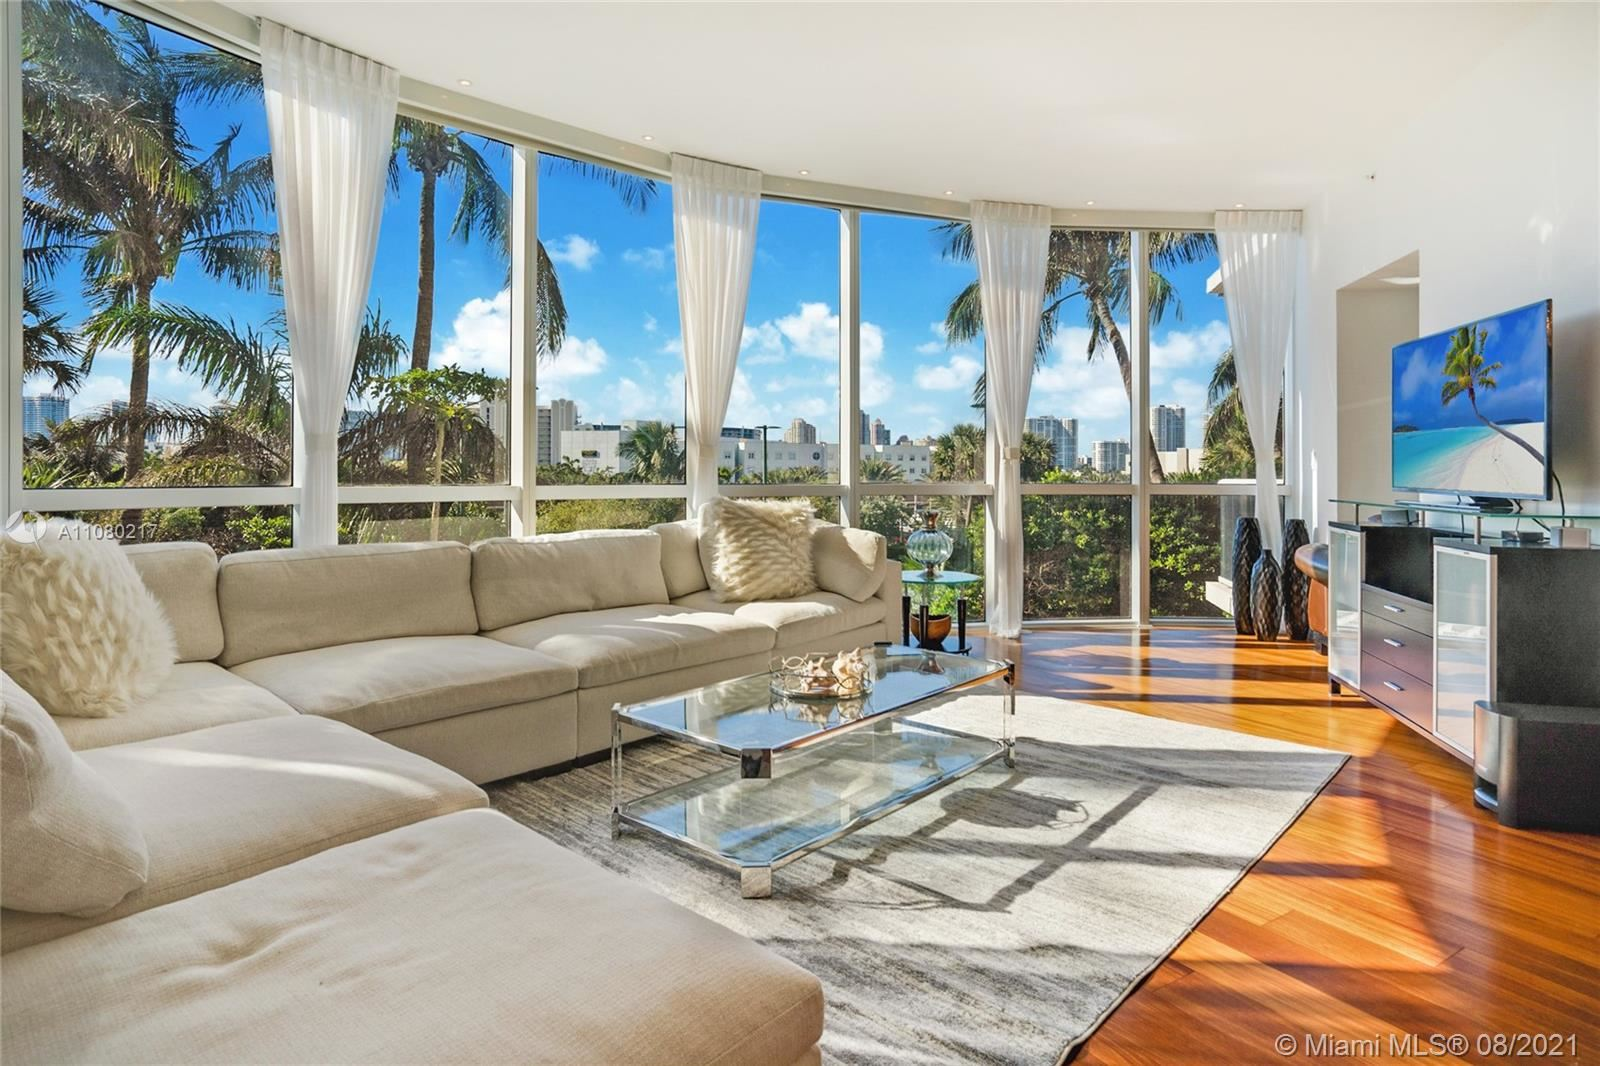 18101 Collins Ave #501, Sunny Isles, FL 33160 - #: A11080217